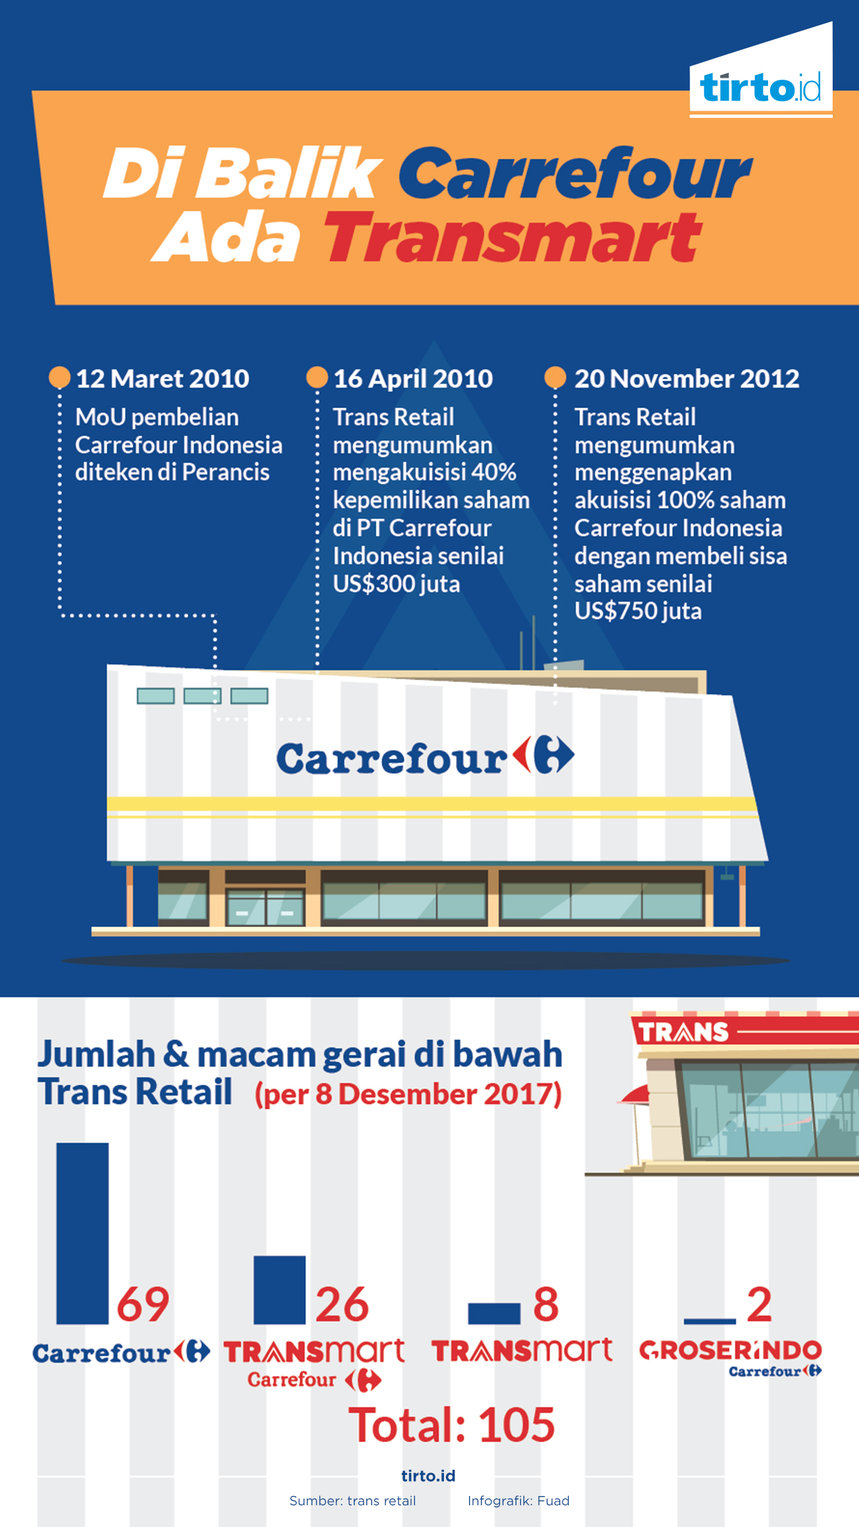 business strategy of carrefour Carrefour ceo lars olofsson will report to investors tuesday about the hypermarket's efforts to win customers with low prices.